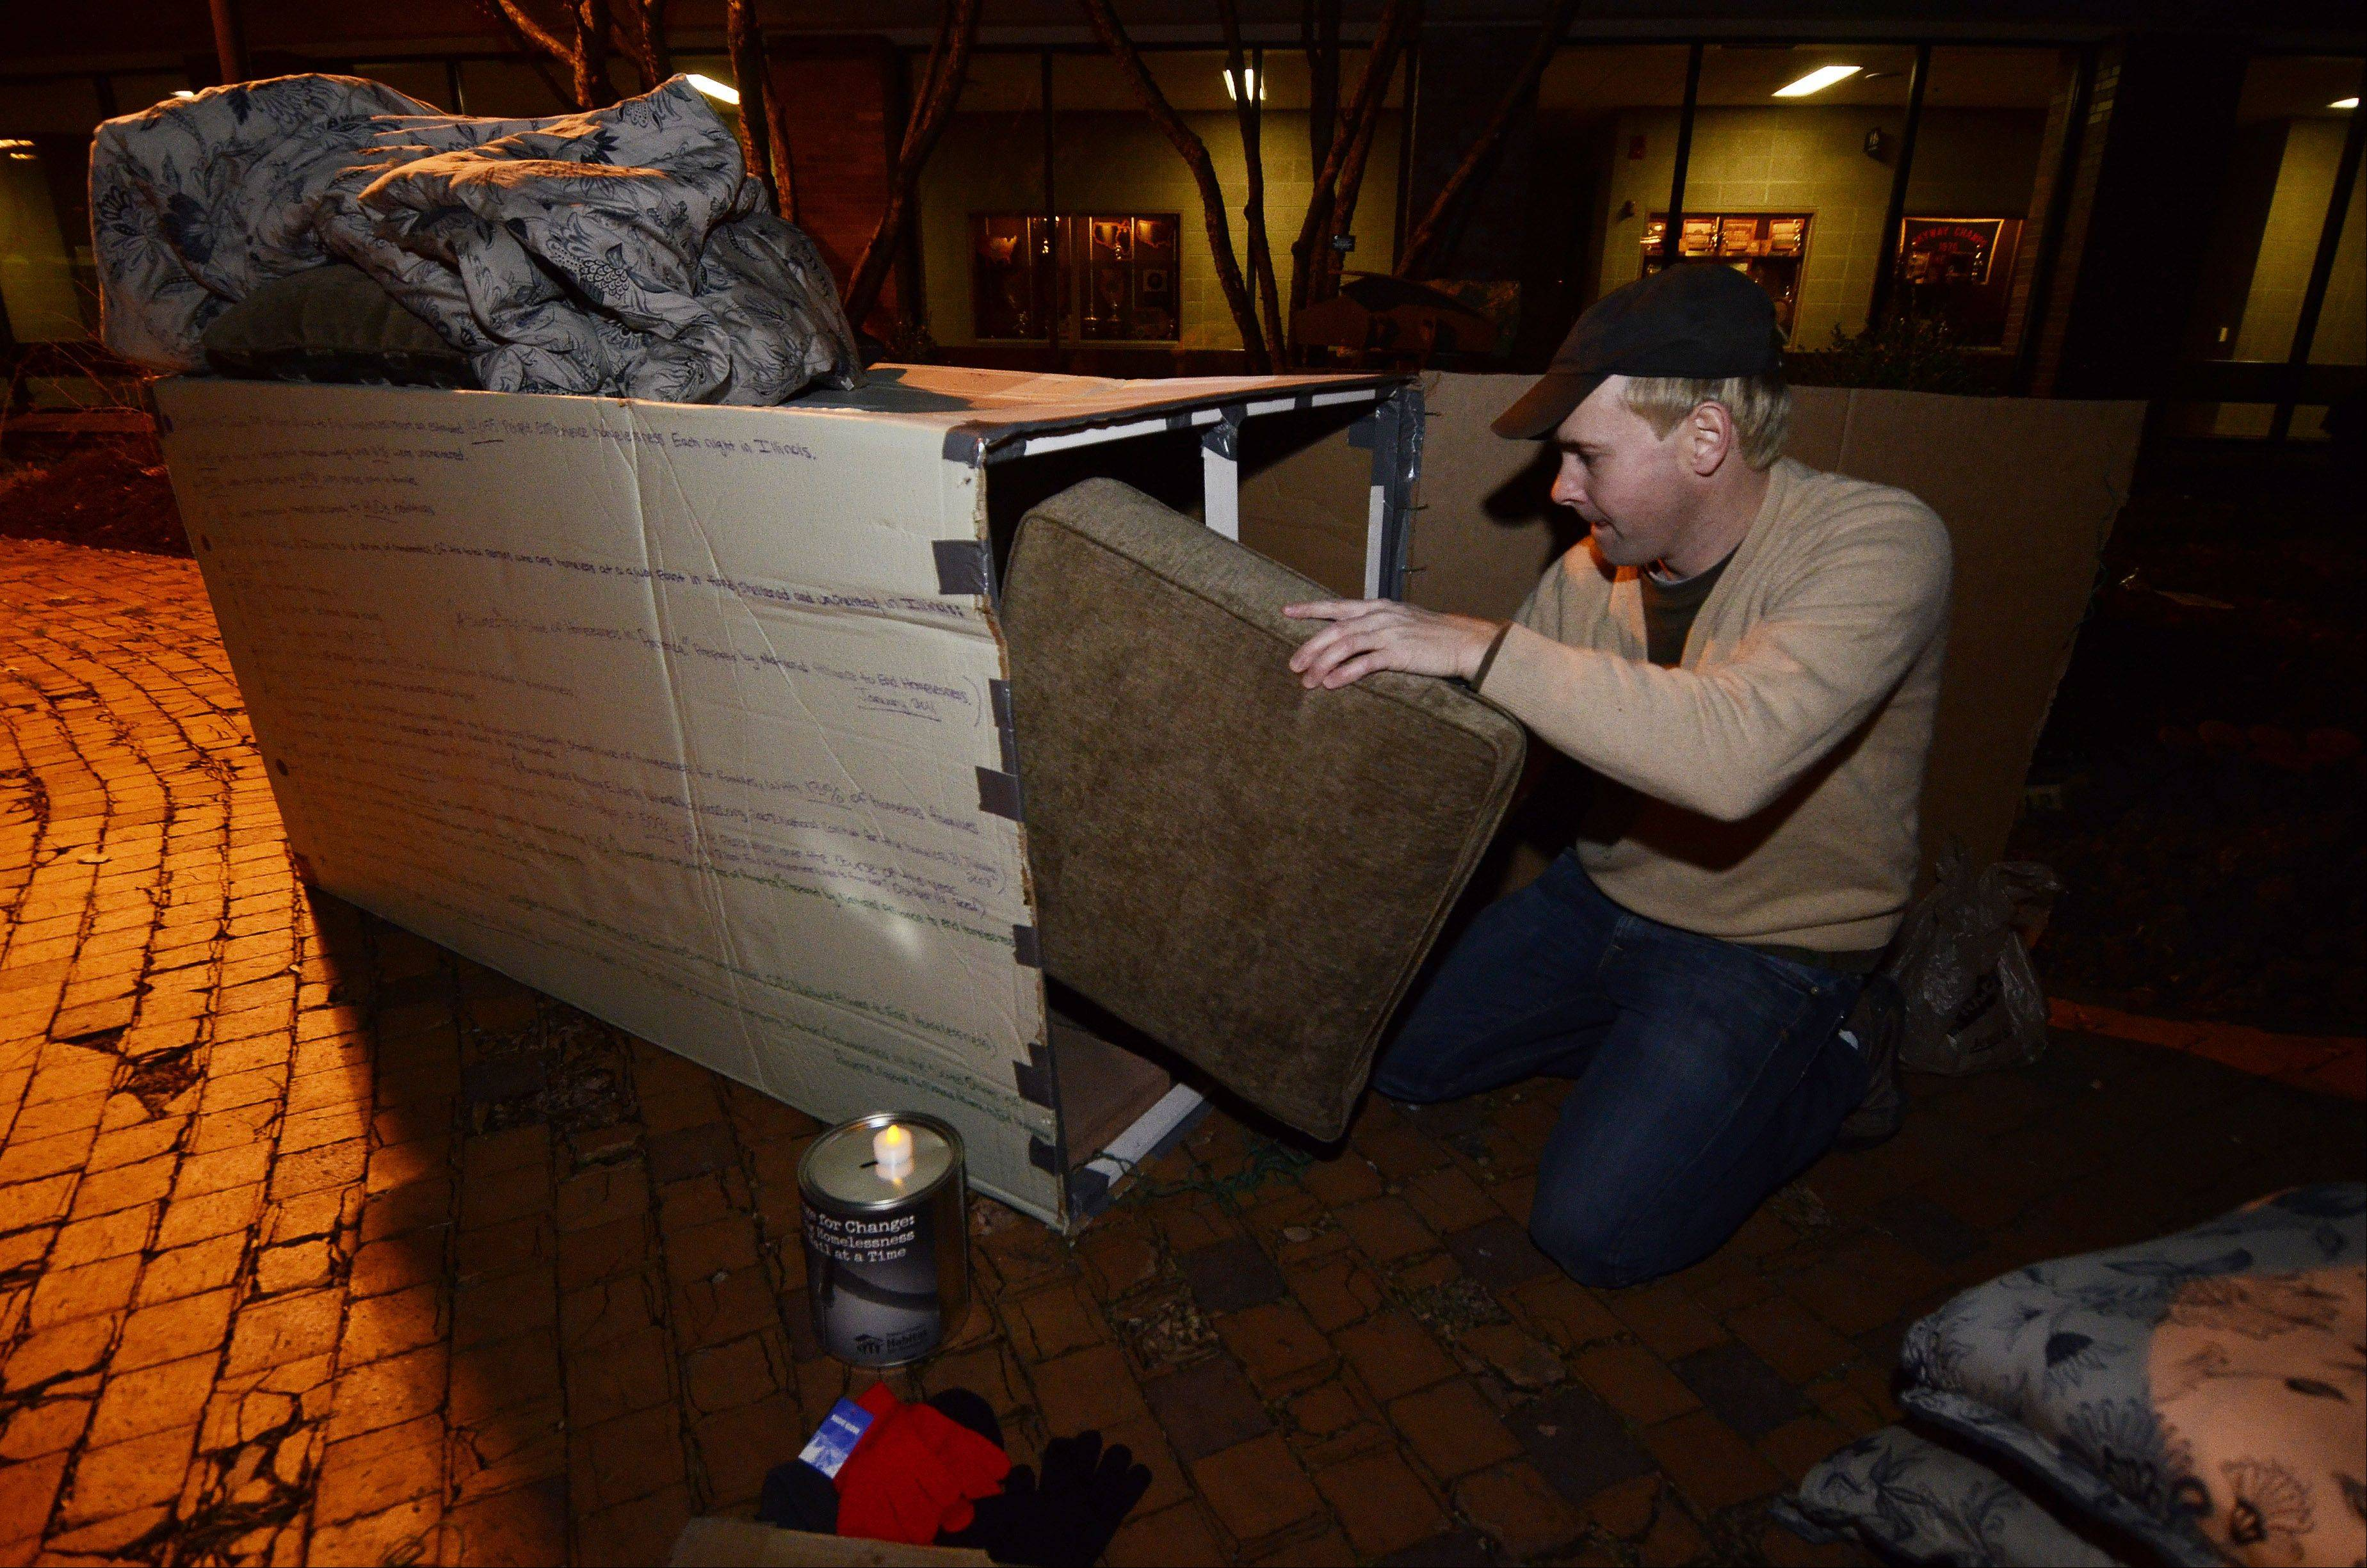 Brian York of Park Ridge prepares his cardboard dwelling for an overnight stay in the courtyard of Oakton Community College's Des Plaines campus Tuesday evening as part of an event to raise awareness for the plight of the homeless. York, now an Oakton student, was homeless two years ago after he suffered an on-the-job injury and his disability insurance ran out.